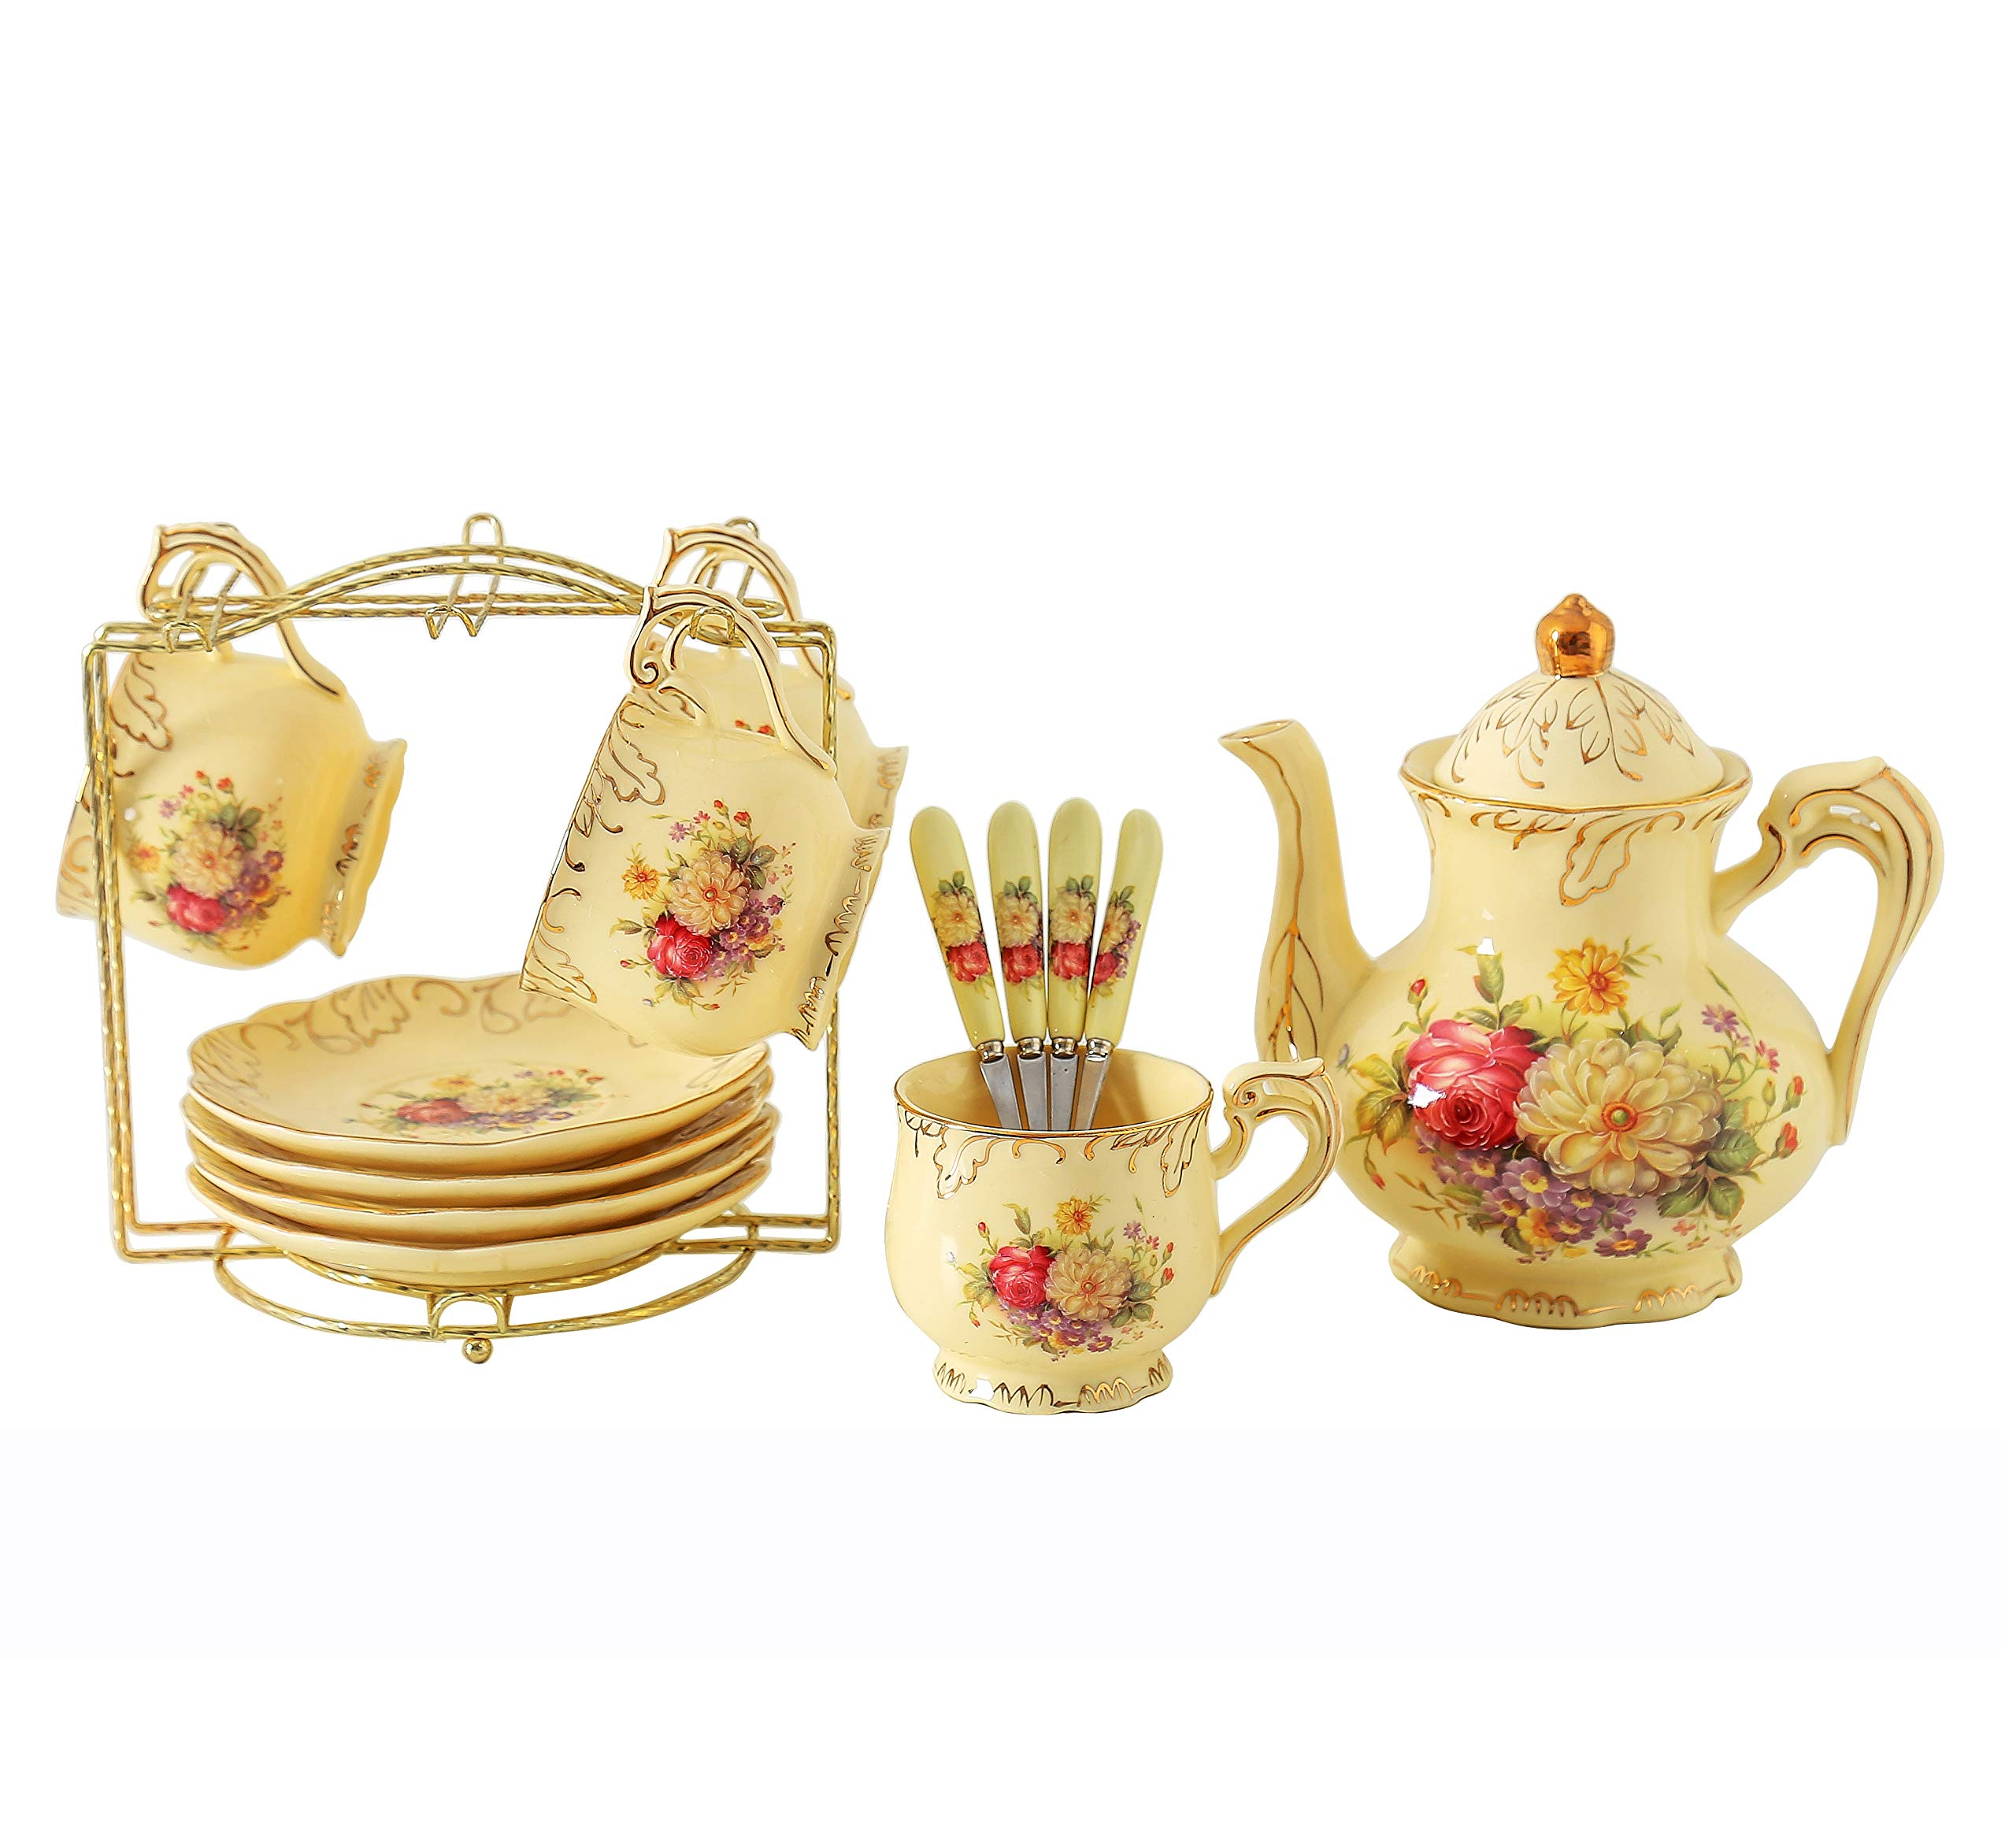 ufengke 9 Piece Creative European Luxury Tea Set, Ivory Porcelain Ceramic Coffee Set With Metal Holder, Hand Painted Red And White Rose Flower, For Wedding Decoration